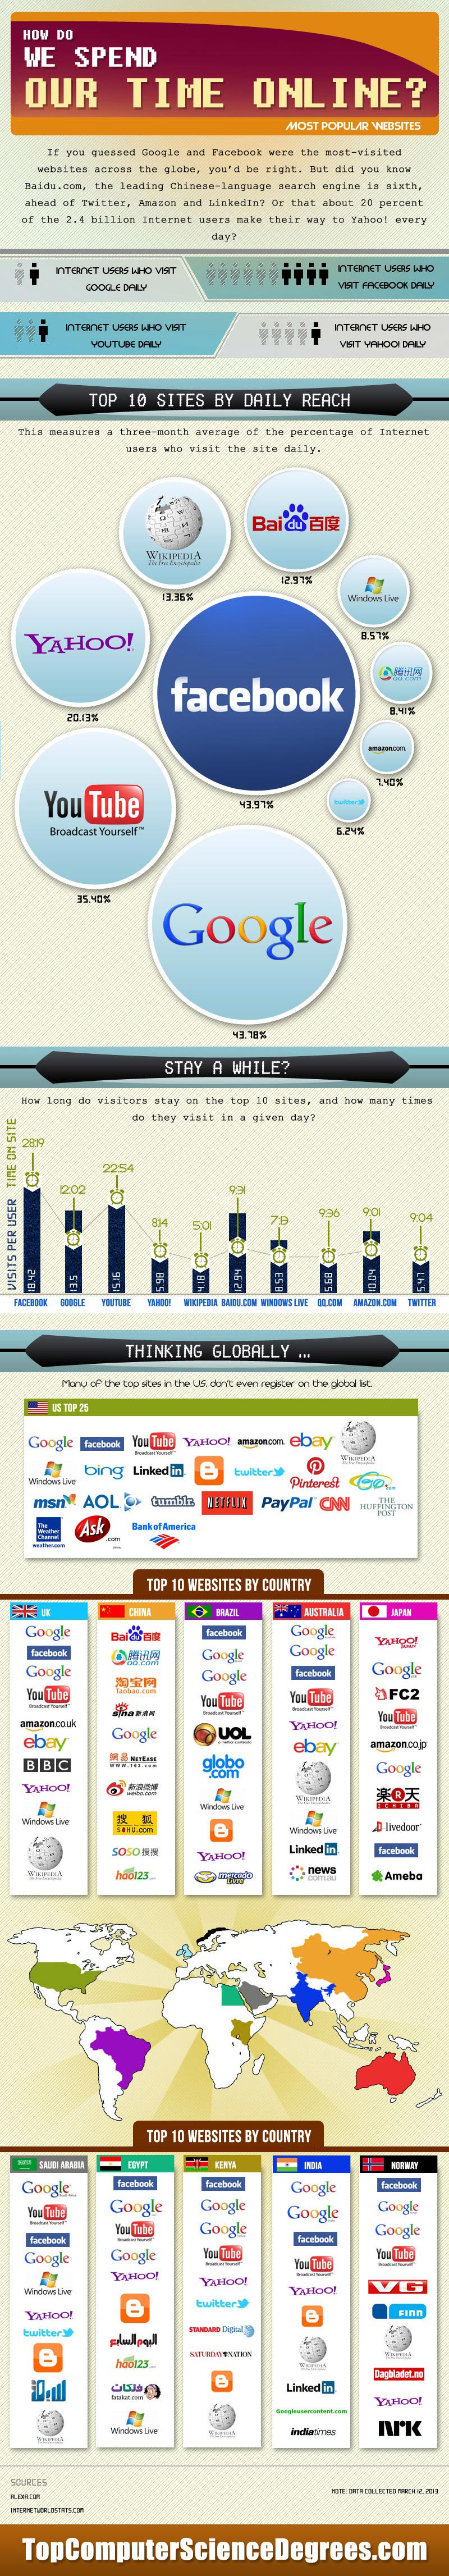 How-Do-We-Spend-Our-Time-Online-Infographic